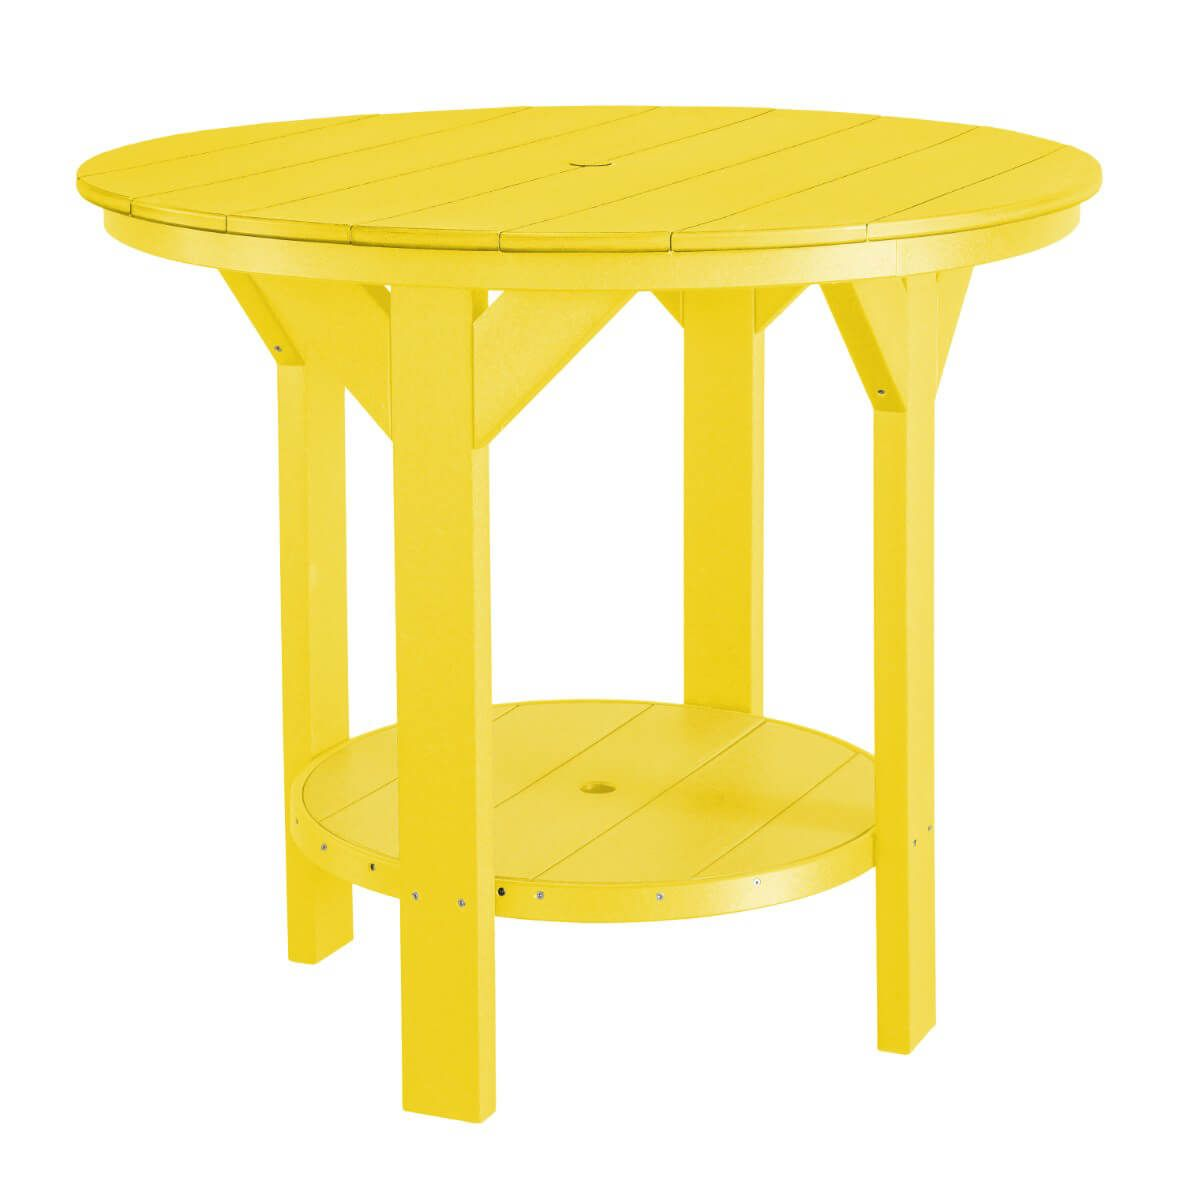 Lemon Yellow Sidra Outdoor Pub Table